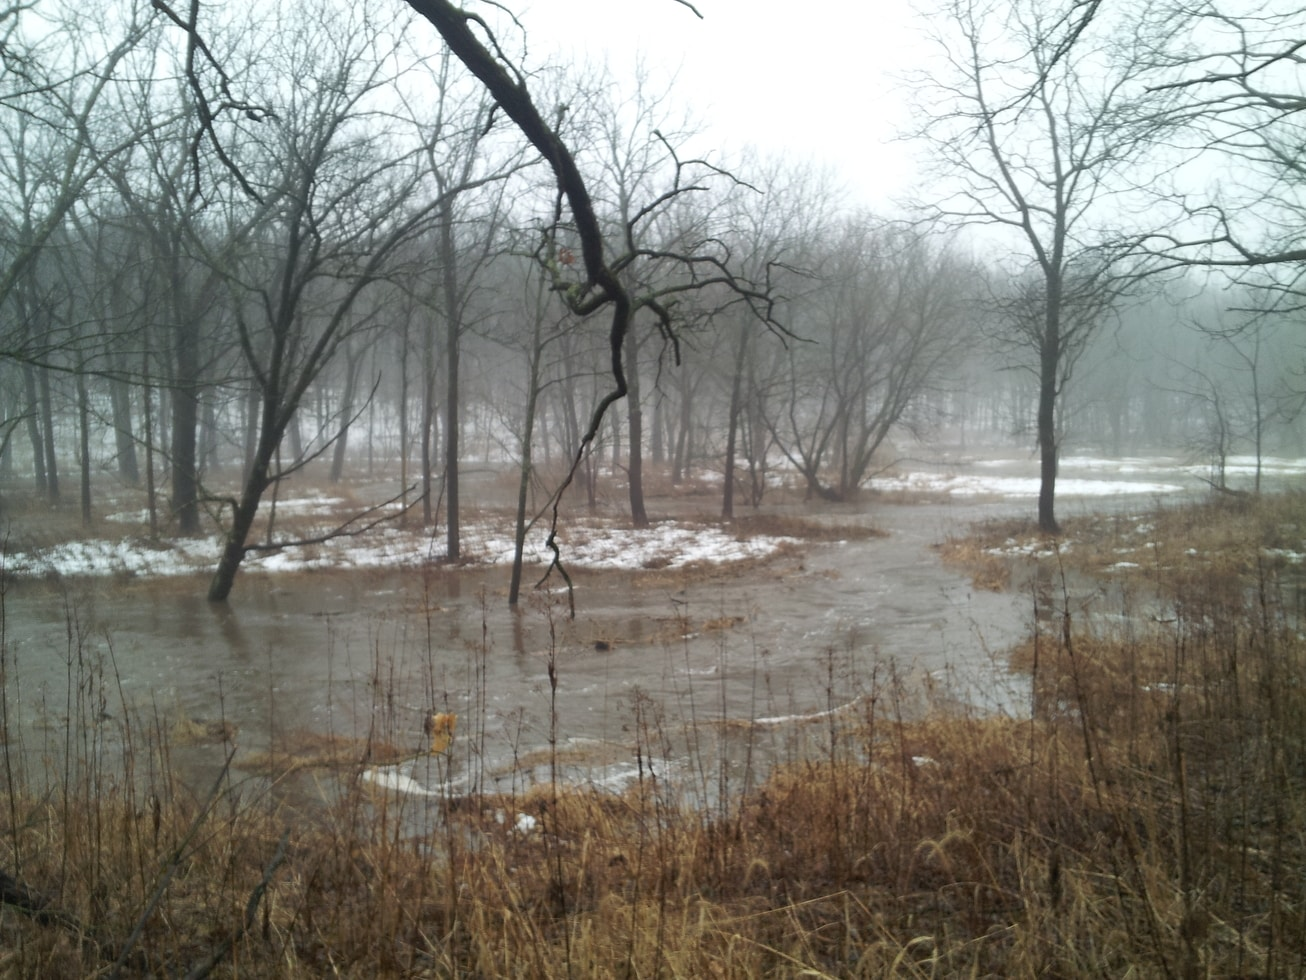 The area in the foreground is usually well above water, with Hall Creek confined to a channel behind. The floodplain deftly carried the excess water downstream toward the Rock River.